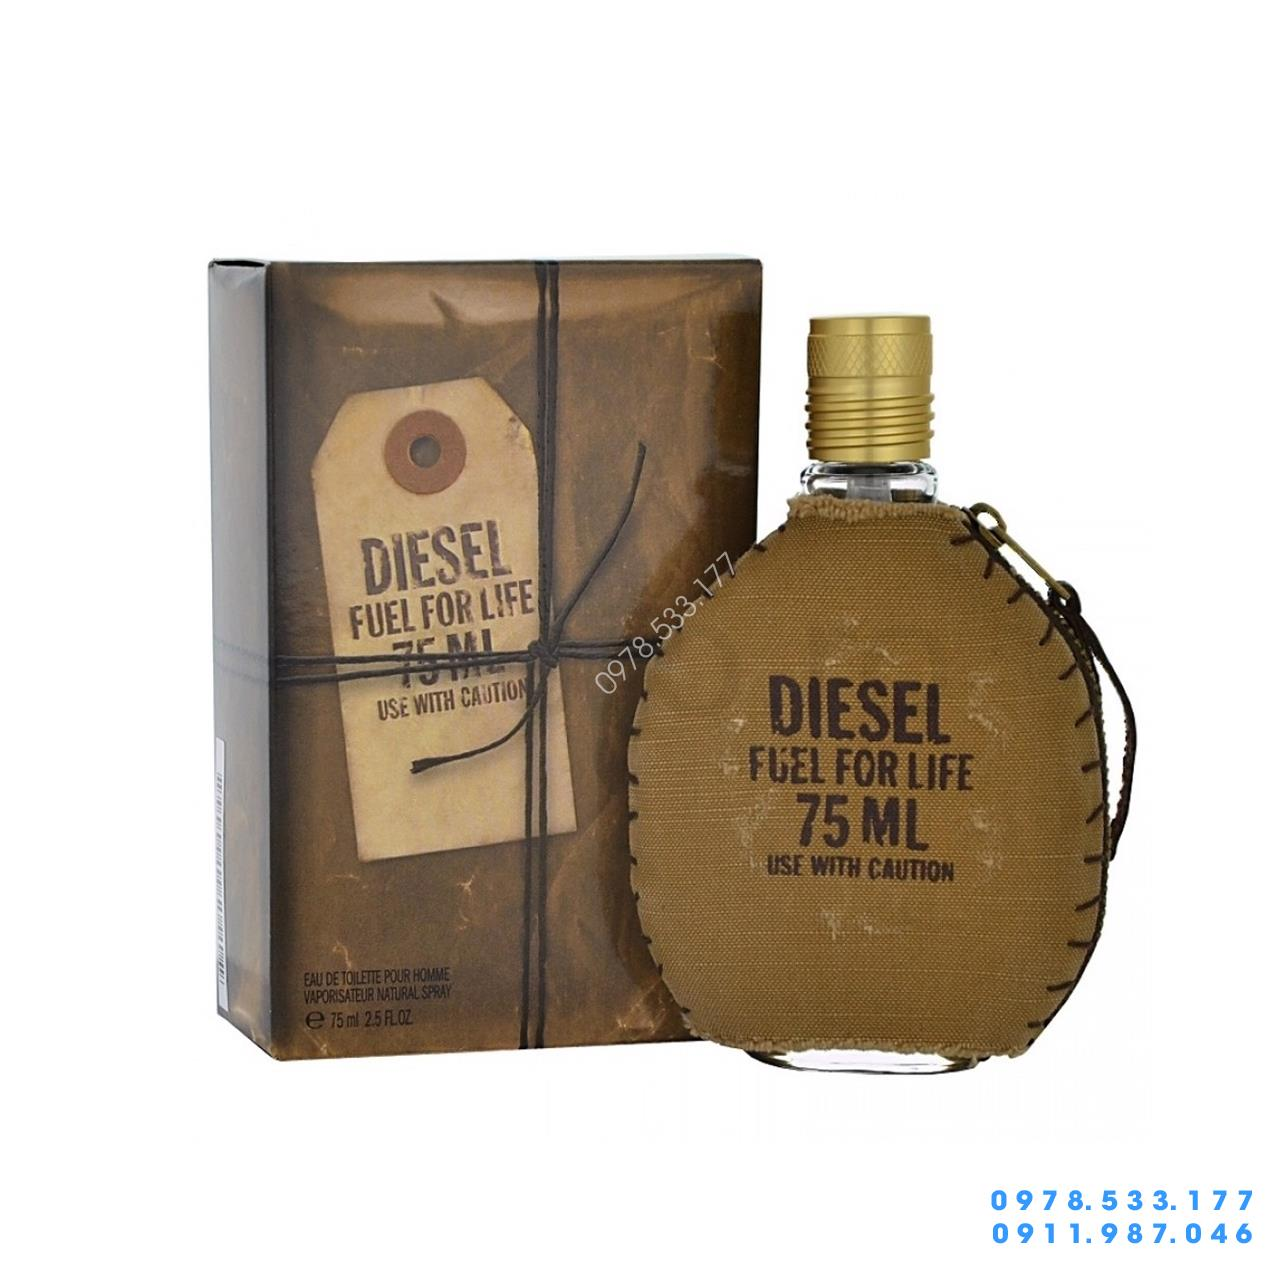 nuoc-hoa-diesel-fuel-for-life-pour-homme-edt-125ml-chinh-hang-pn100047